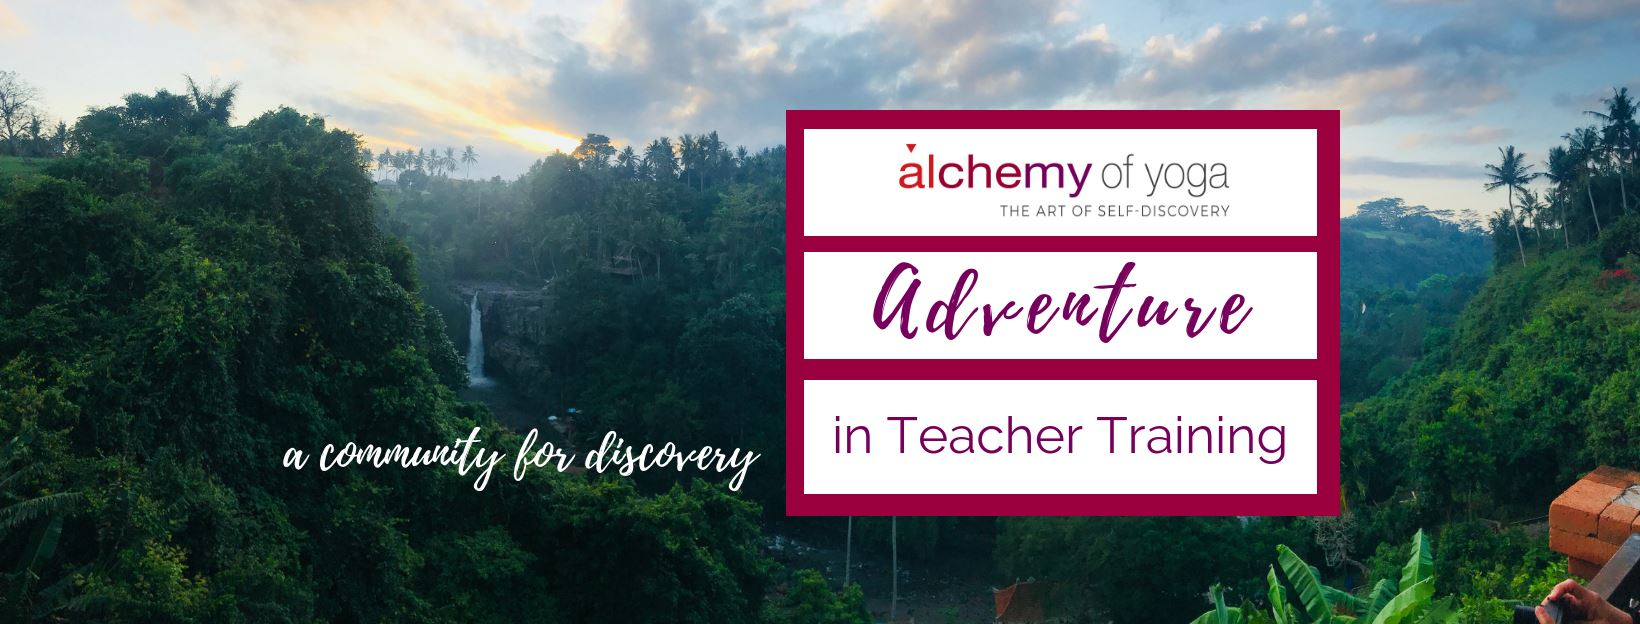 facebook cover alchemy of yoga adventures